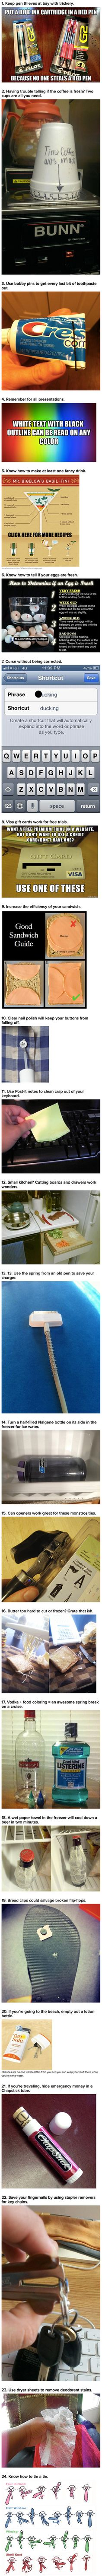 Here are some simple life hacks that every geek should know about.